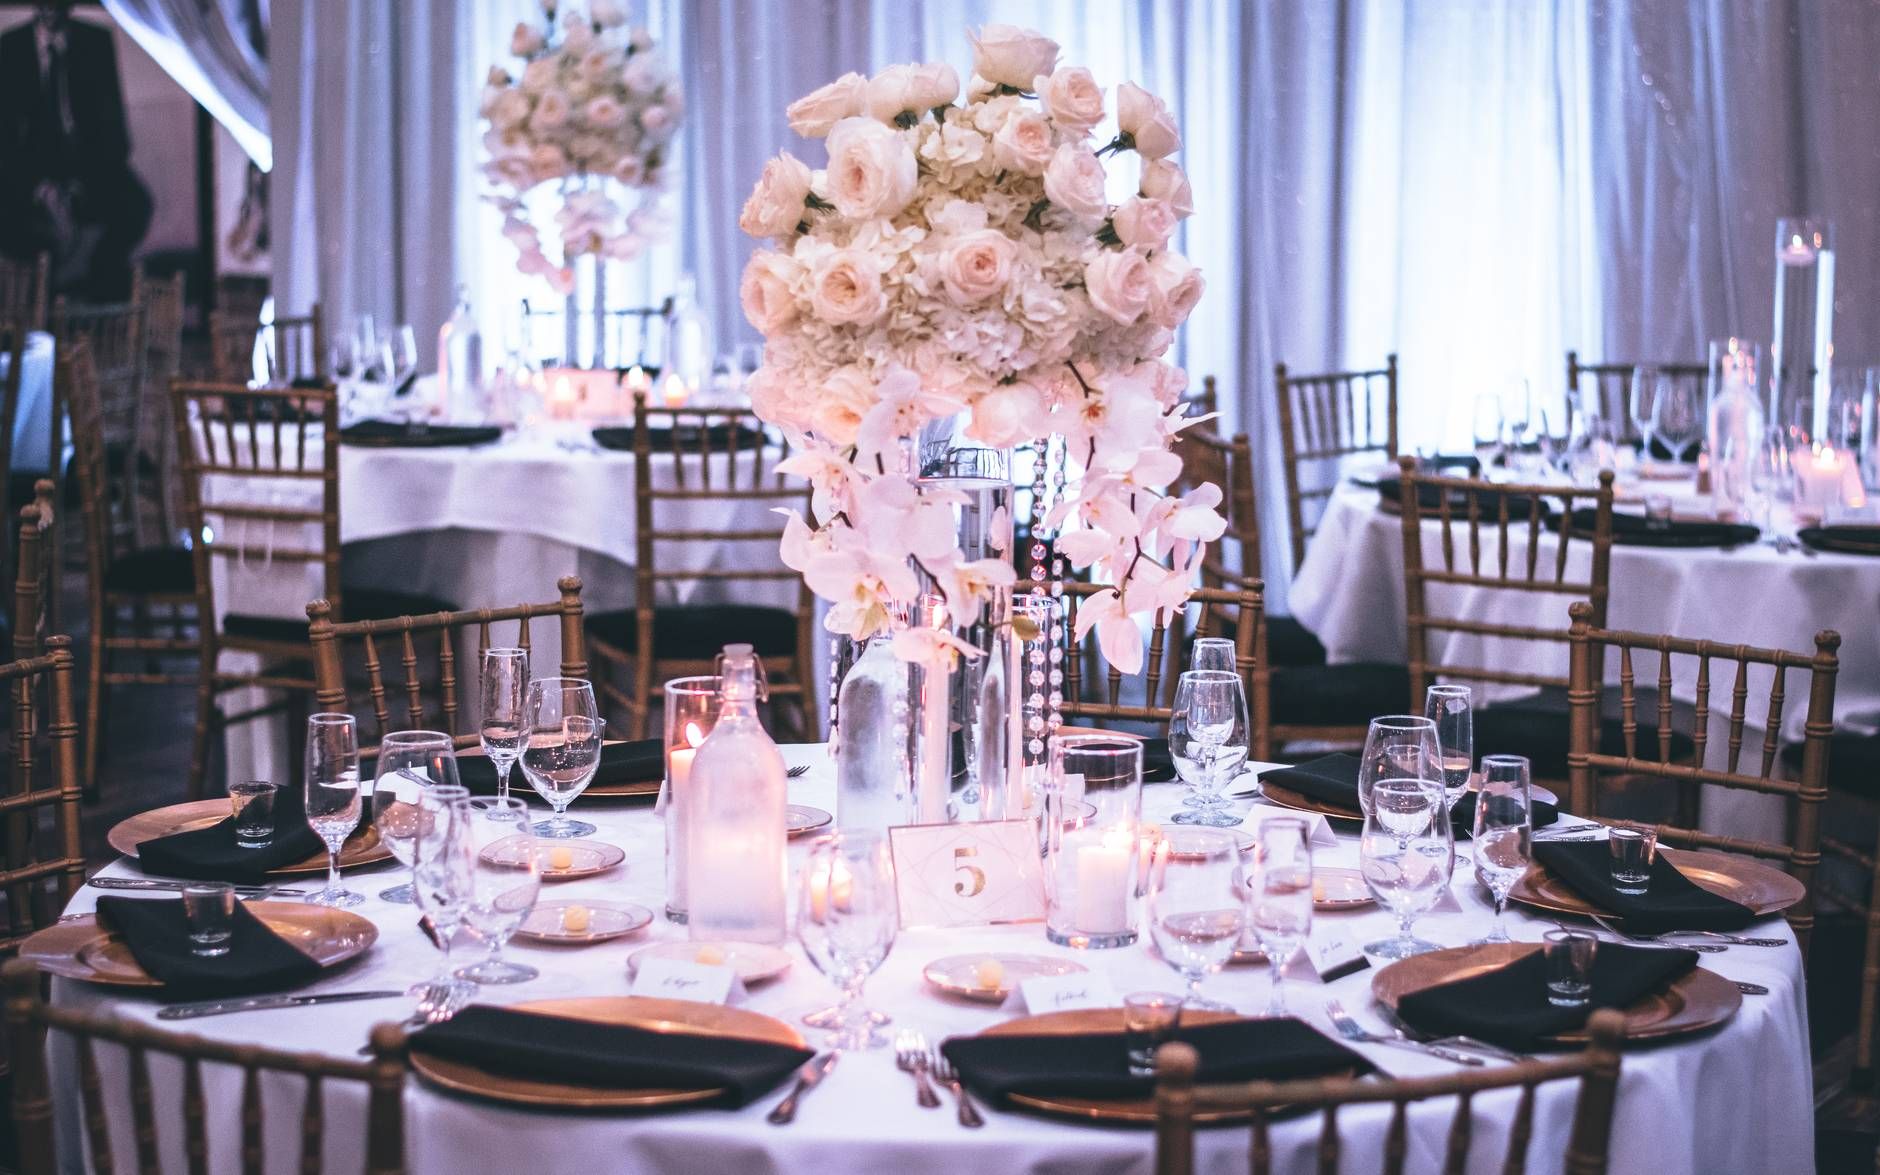 pink and white roses centerpiece on top of table